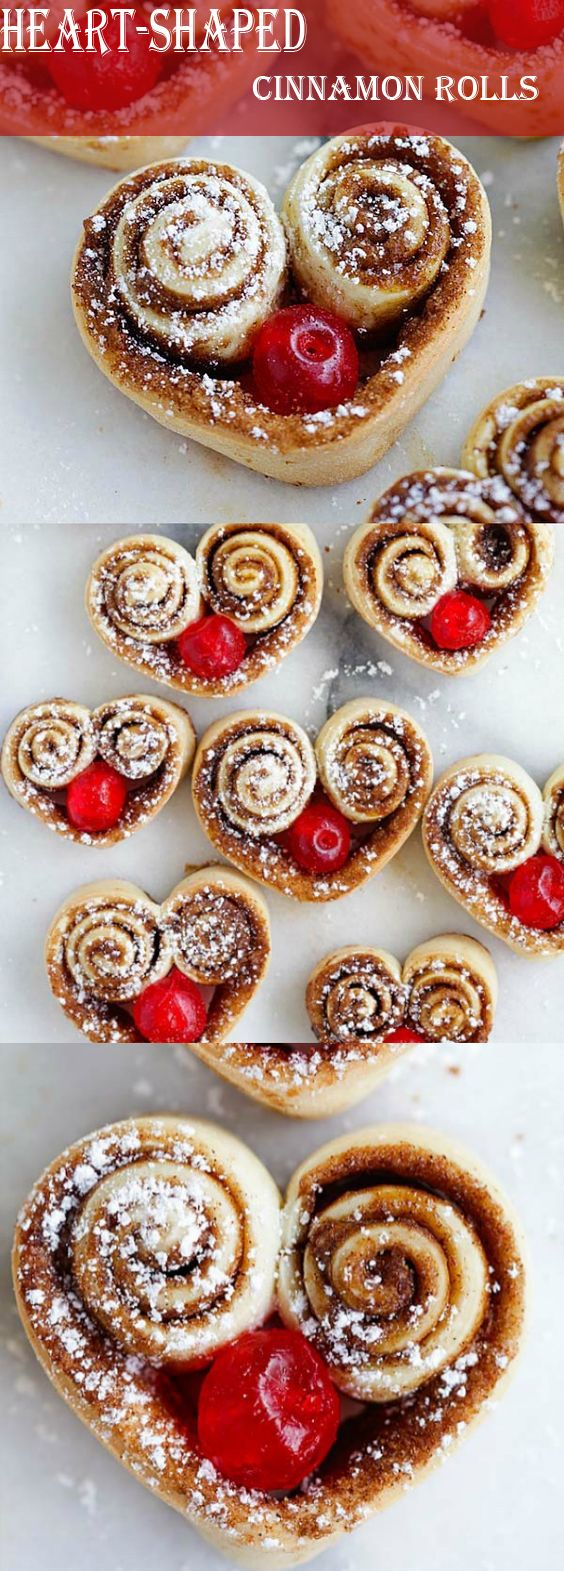 Heart-Shaped Cinnamon Rolls – the cutest and best cinnamon rolls ever, made into heart shape and stuffed with red cherries. So adorable!